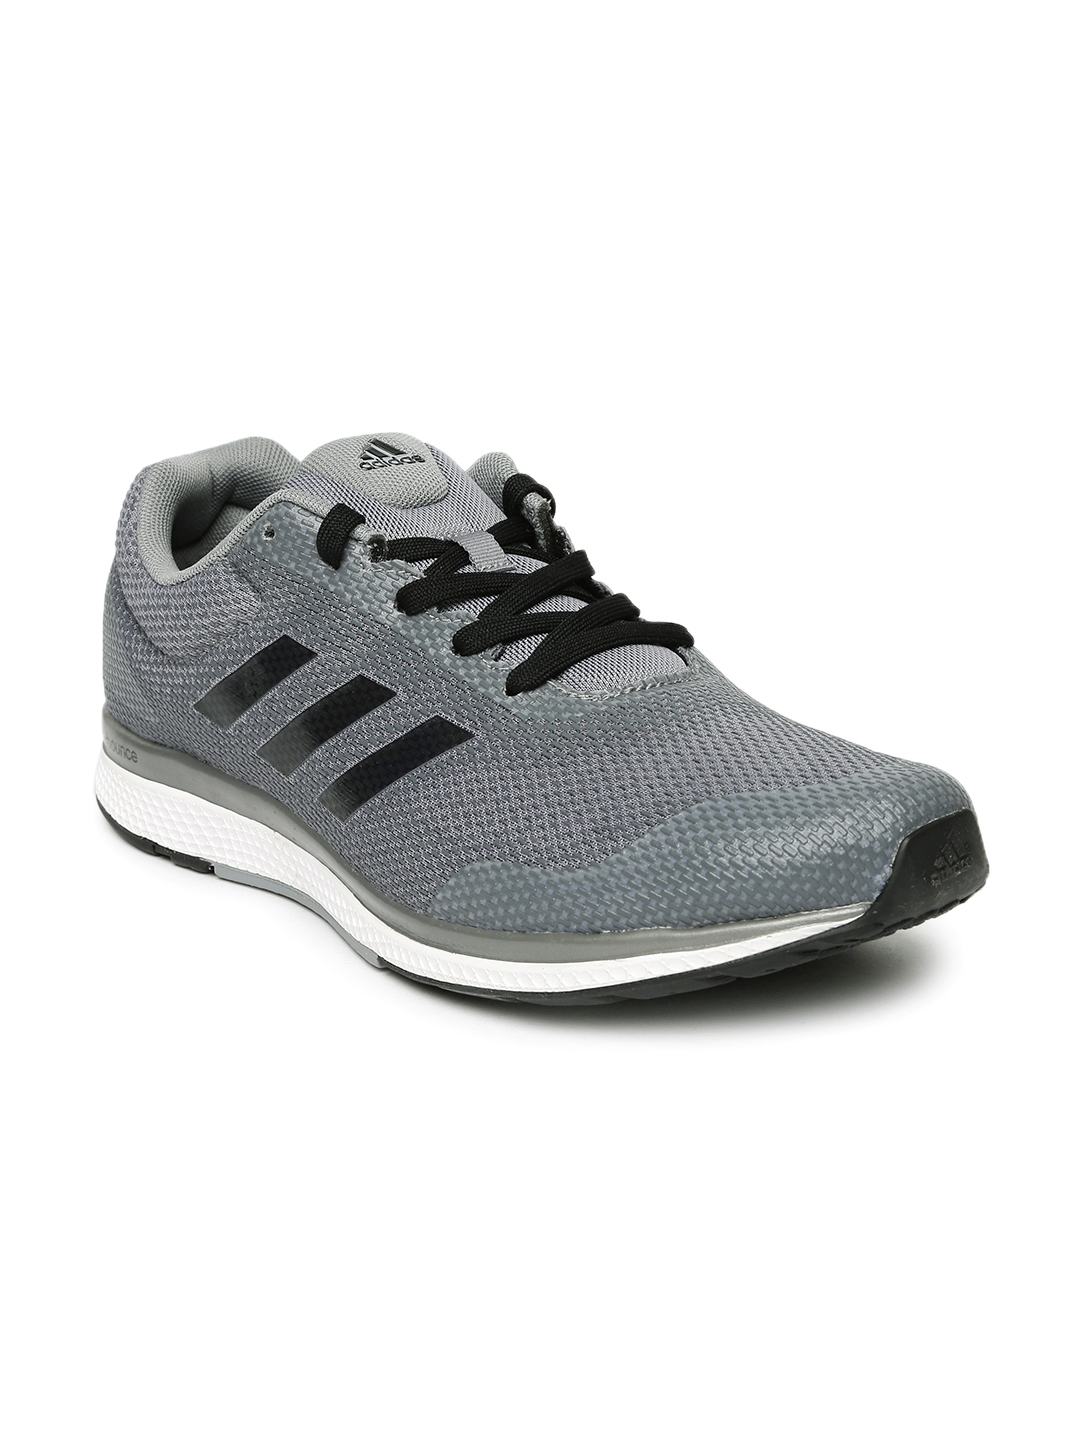 bac01af7016da ADIDAS Men Grey Melange MANA BOUNCE 2 M ARAMIS Running Shoes. This product  is already at its best price